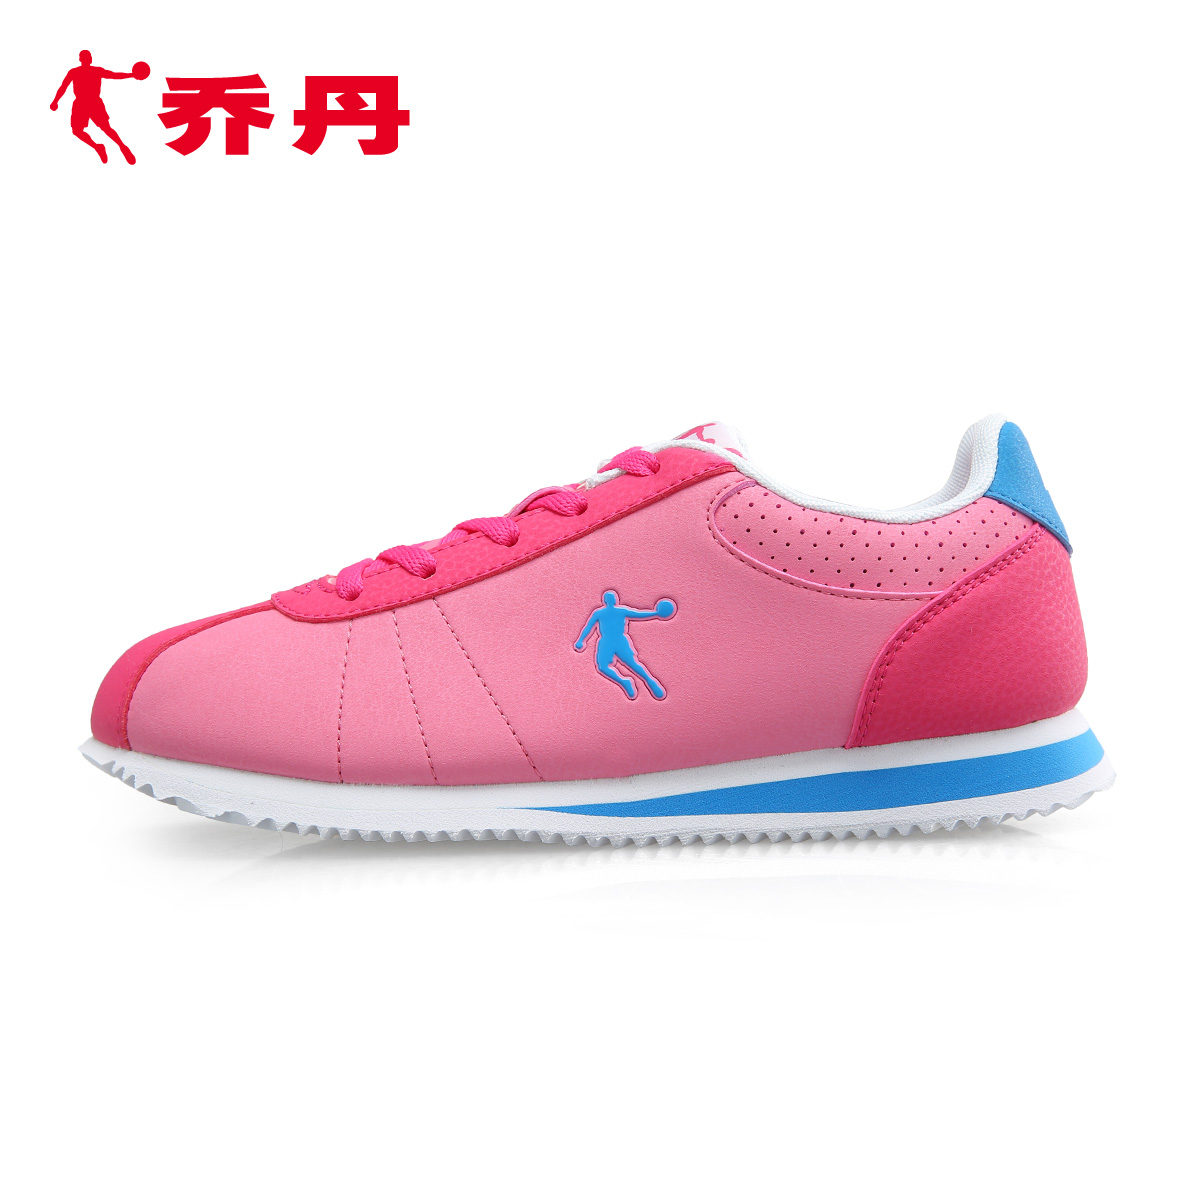 29bc1a4098f8b4 Get Quotations · Jordan sports shoes women shoes running shoes women new  spring and summer casual genuine lightweight slip